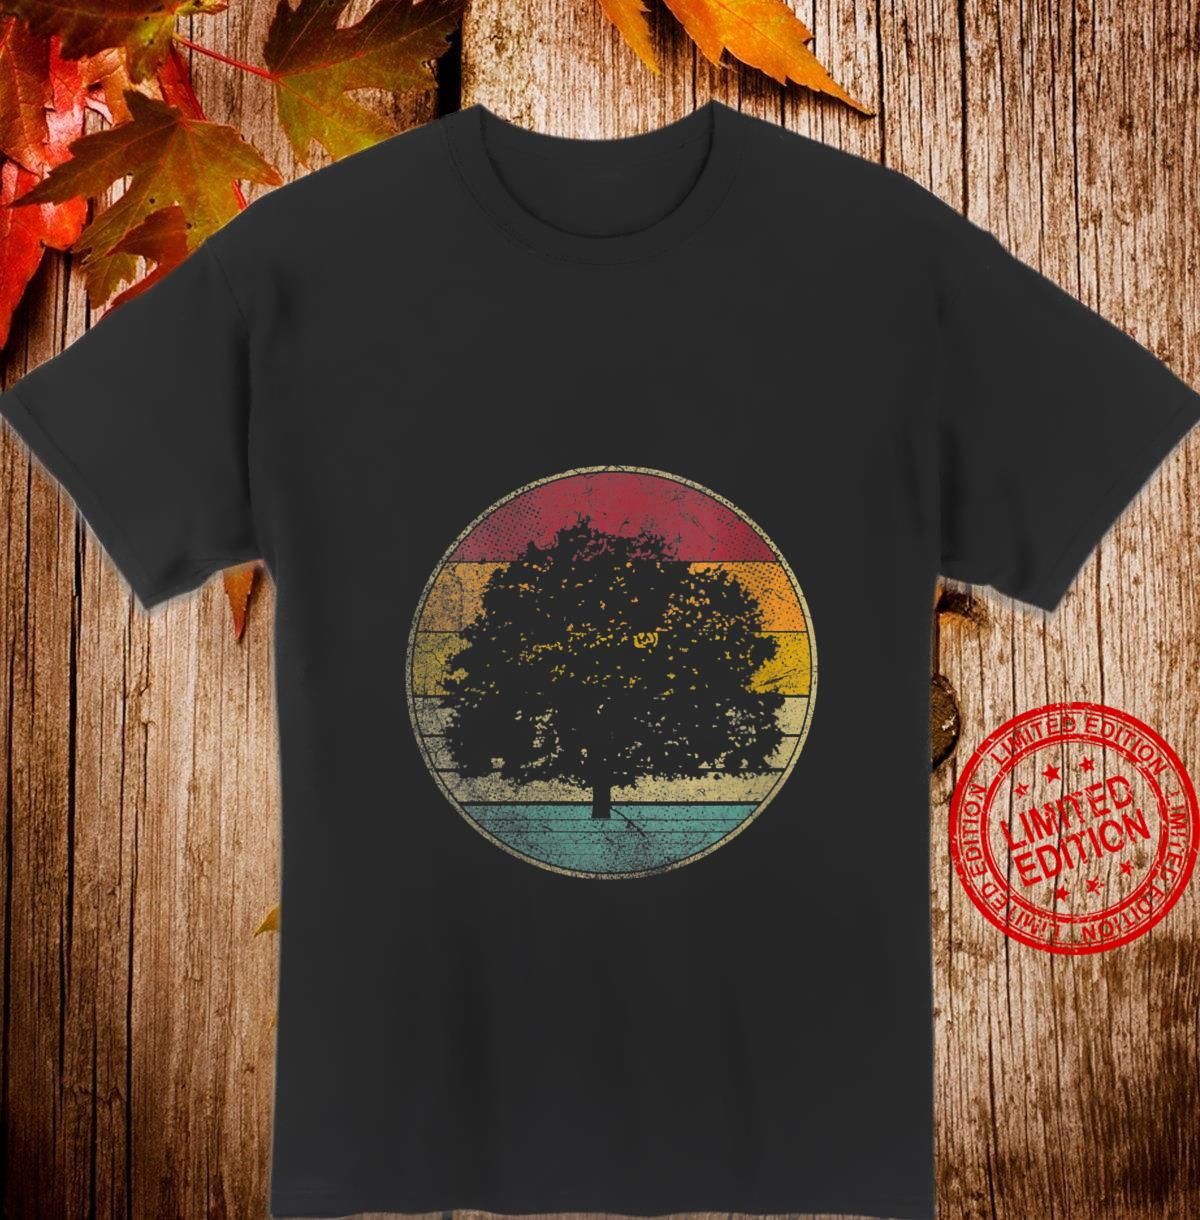 Womens Tree Nature Outdoors Vintage Distressed Retro Silhouette 70s Shirt